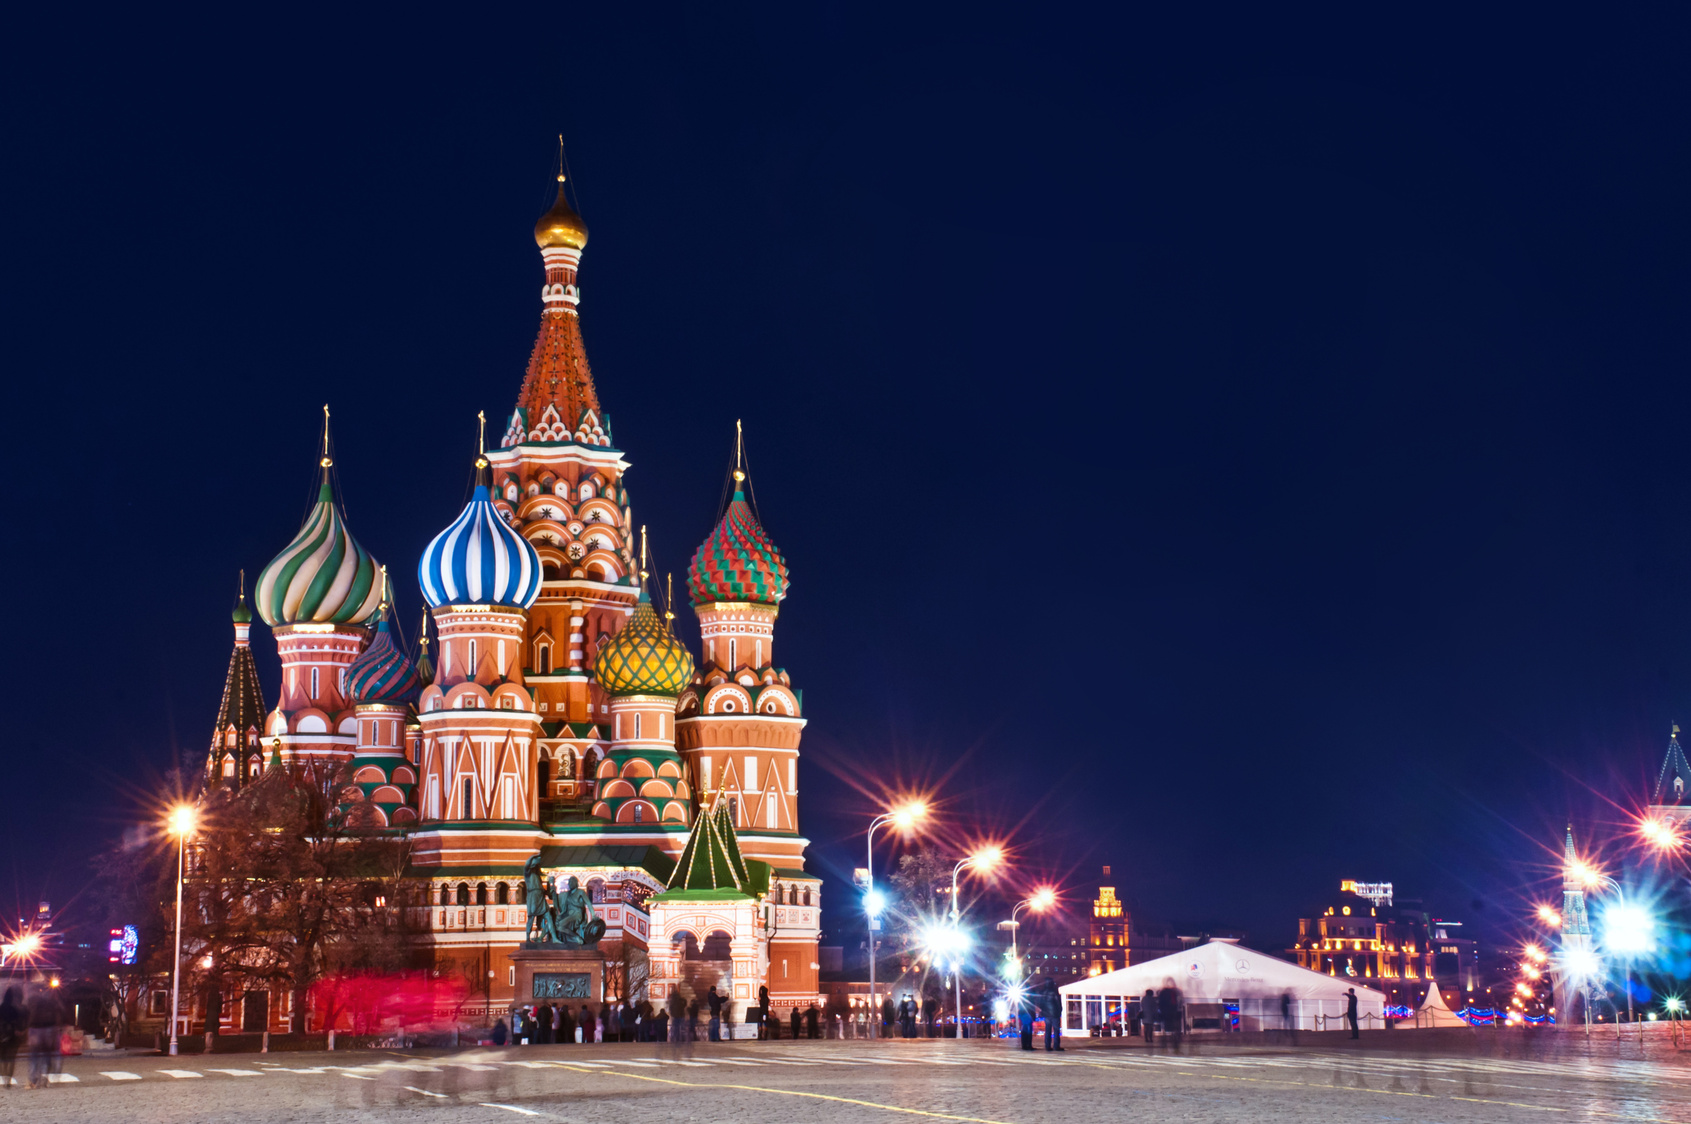 It is impossible to explain Russia. But I have to try ...